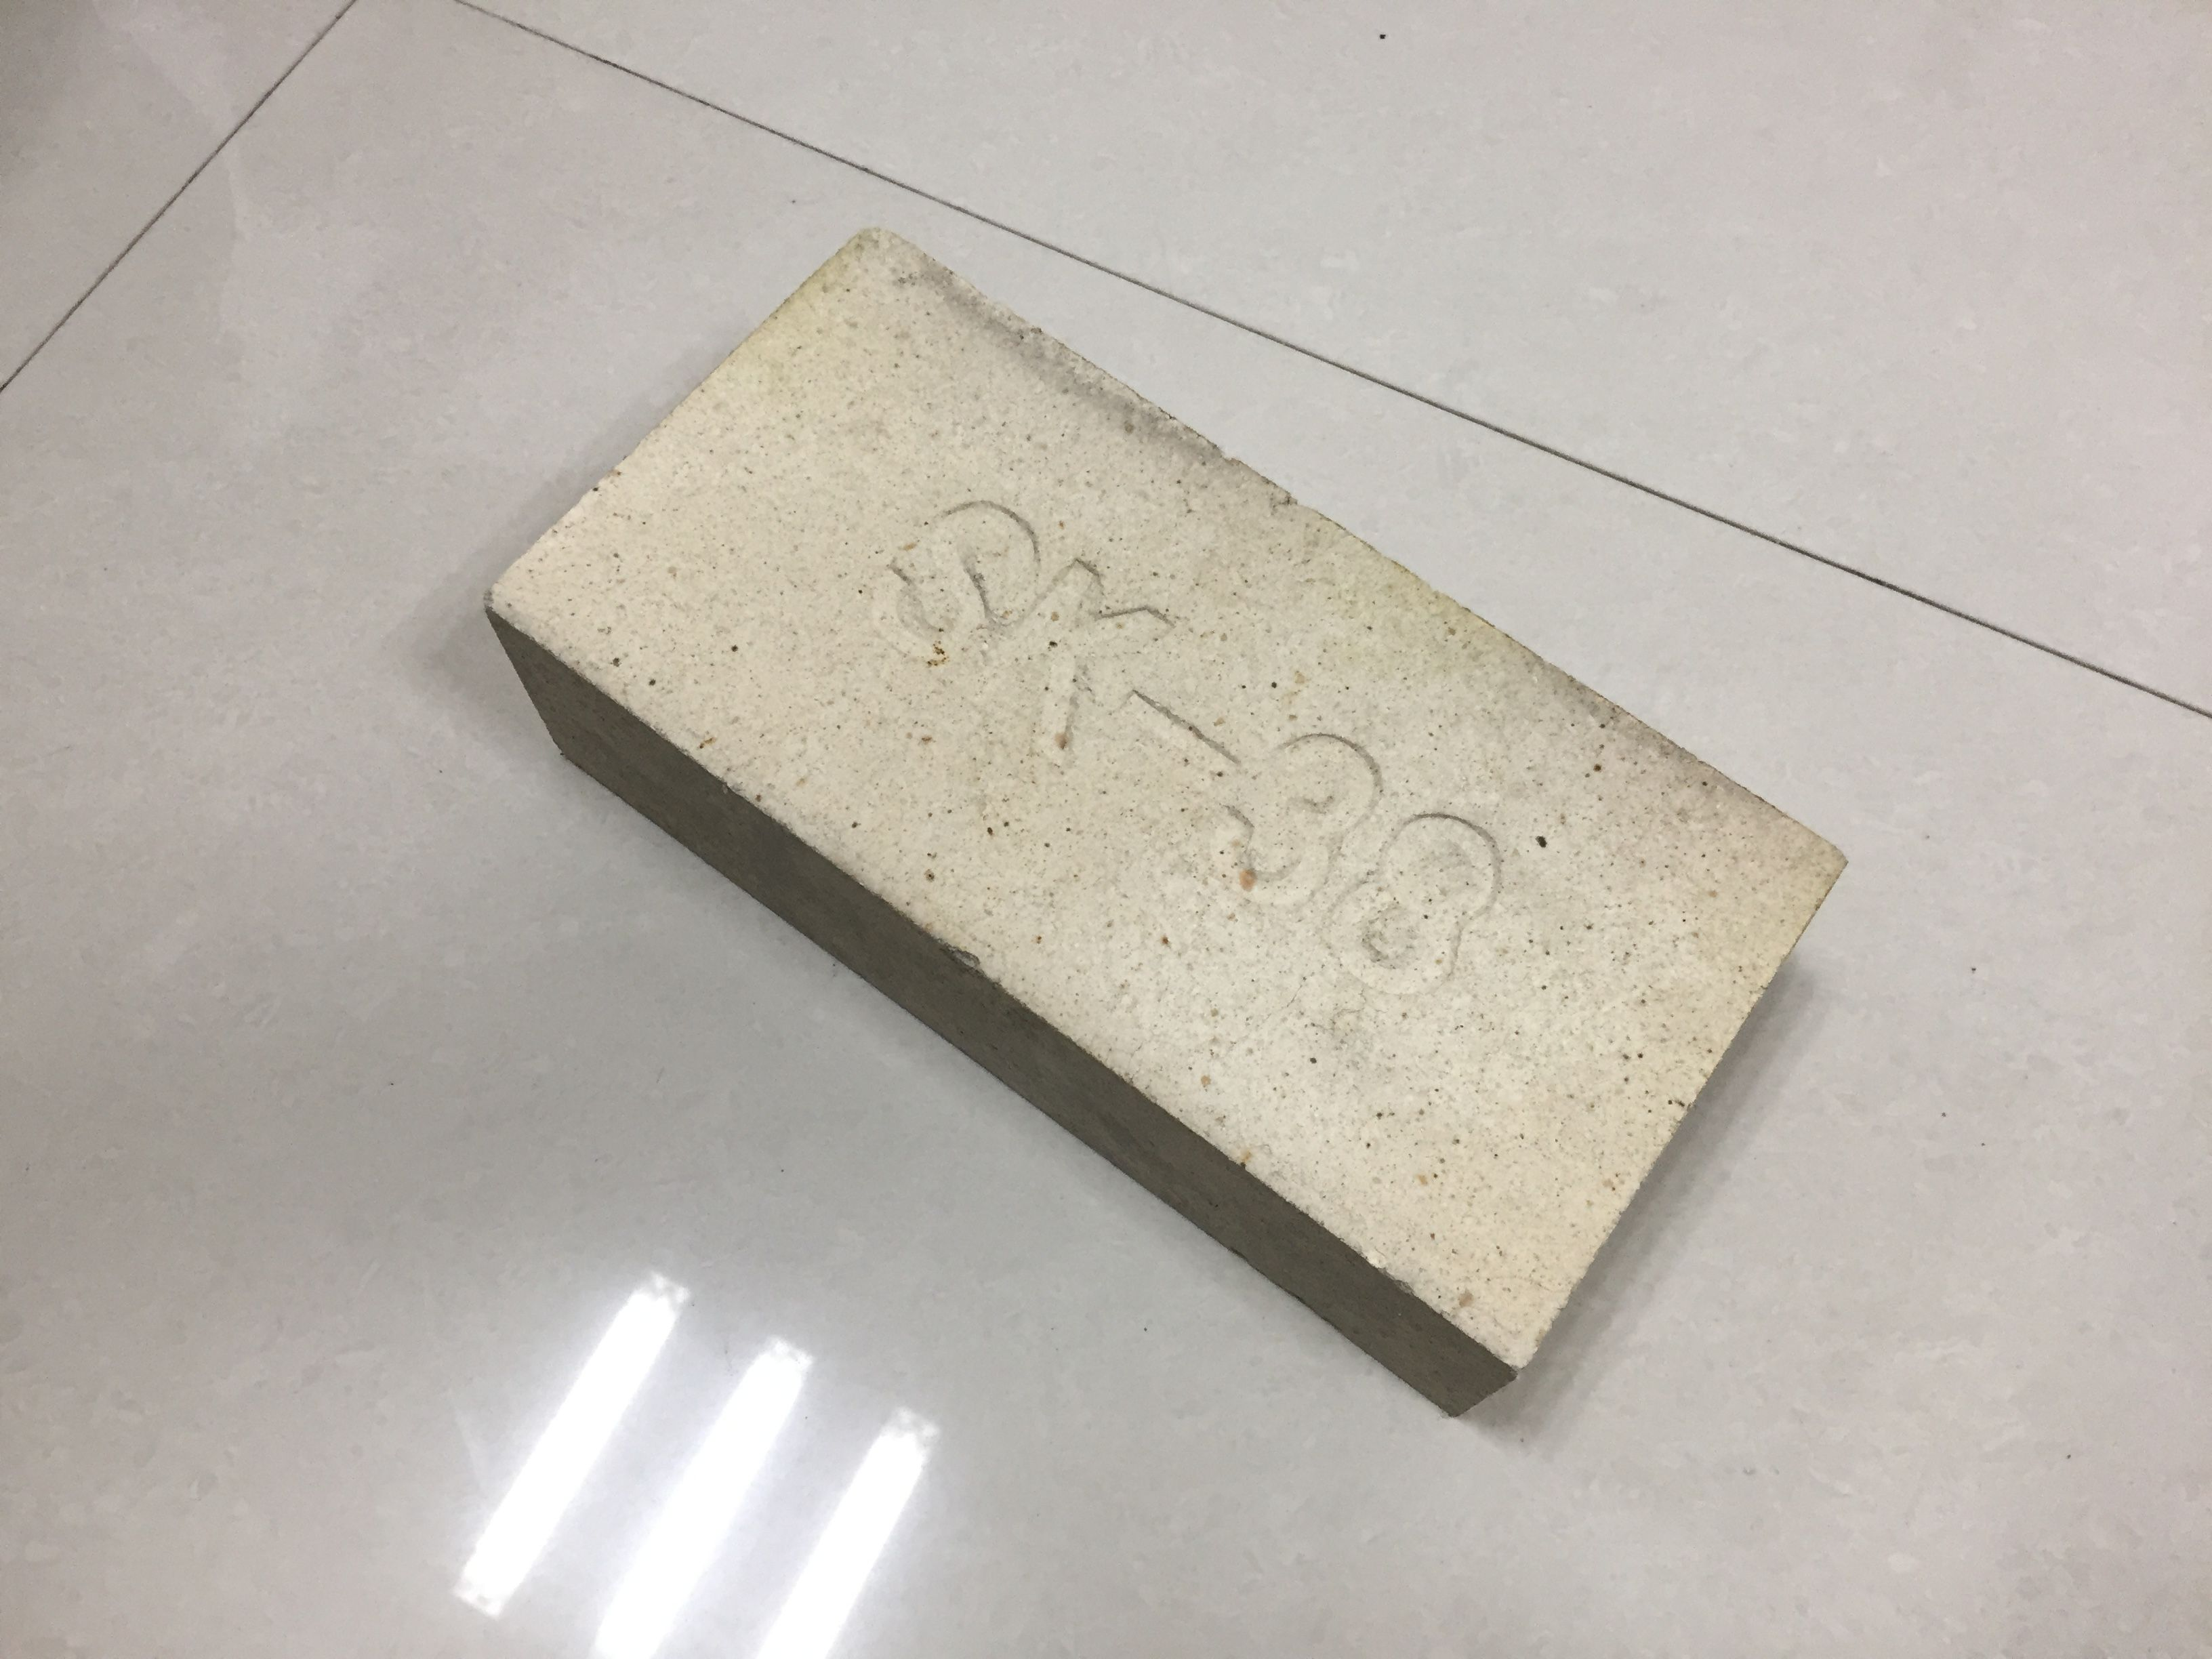 Refractory Brick High Alumina Bricks Usually Refer To Refractory Bricks With More